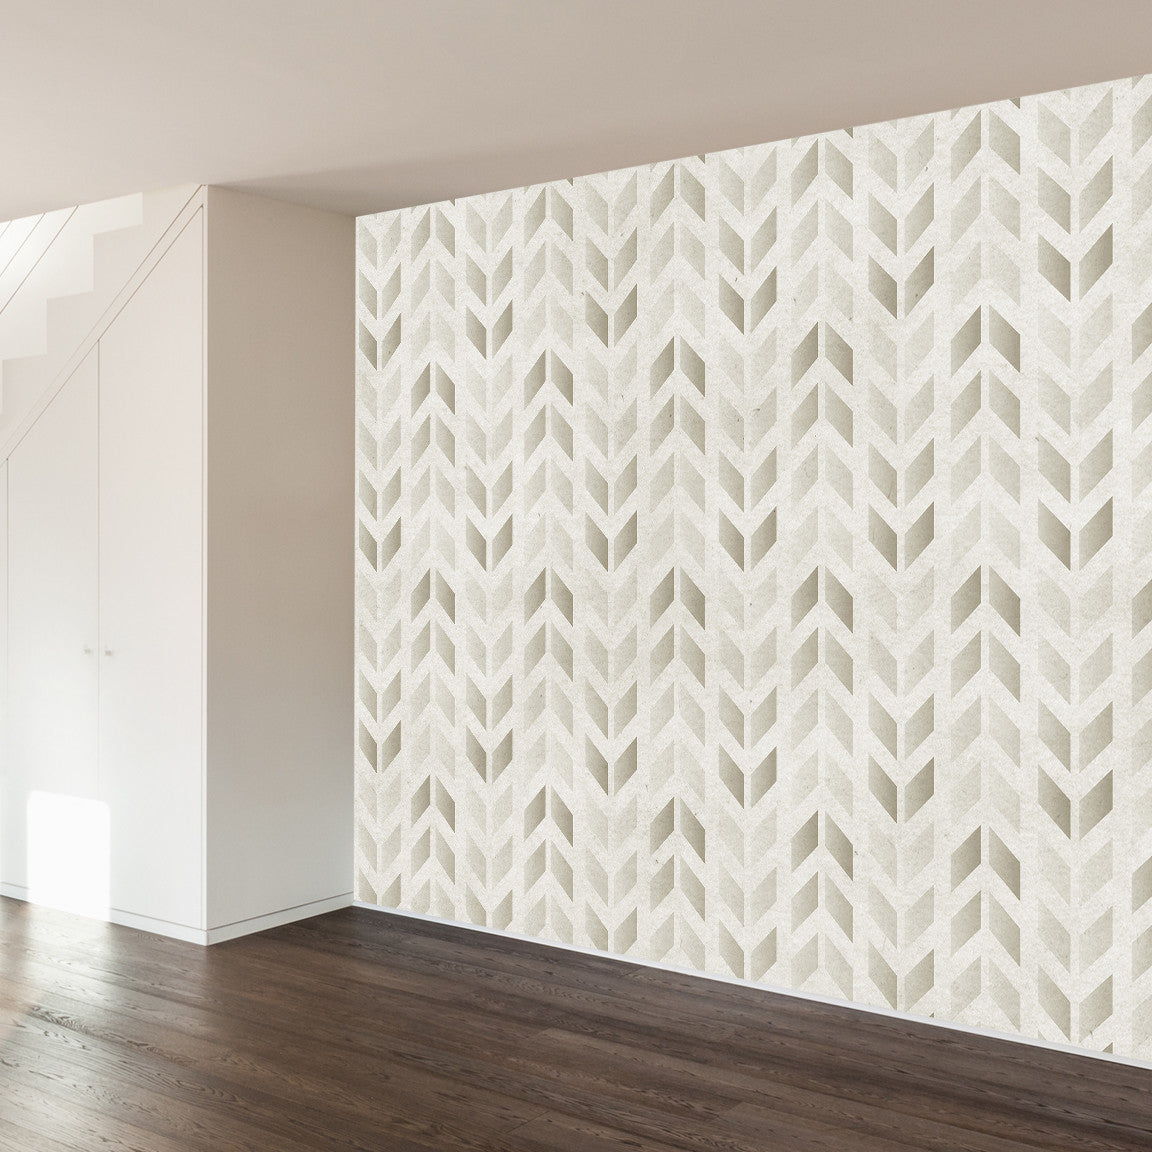 Stamped Chevron Wall Mural image